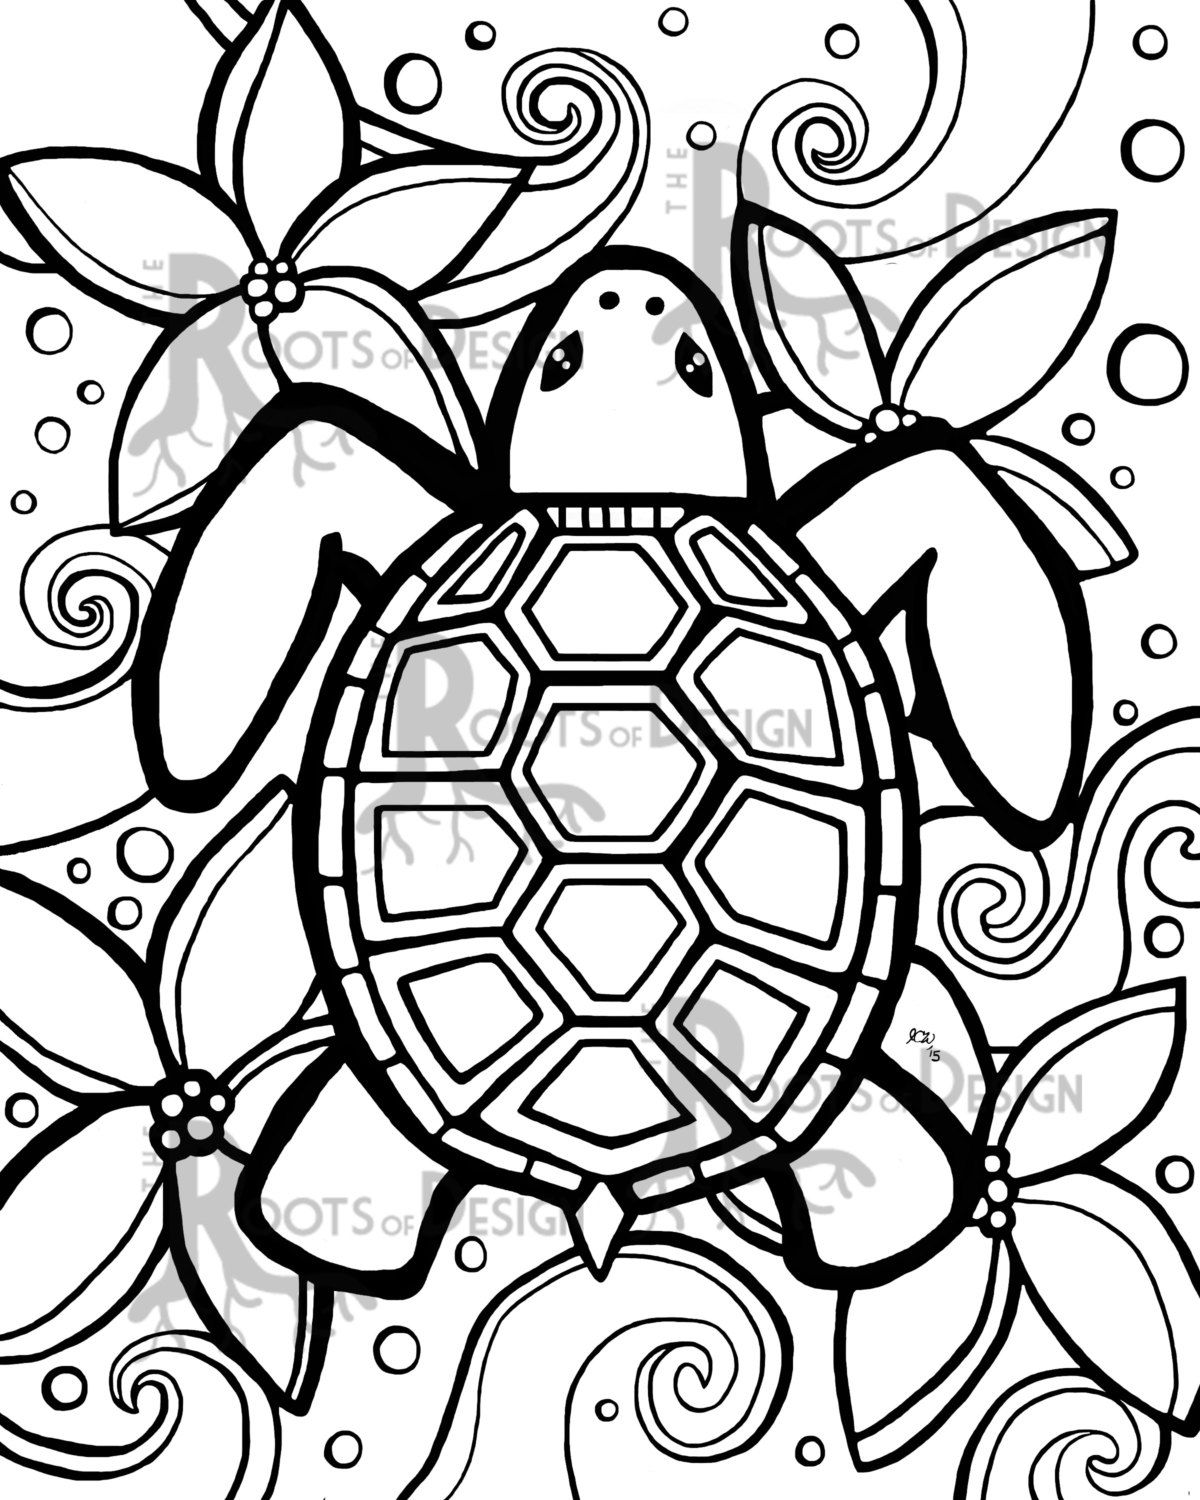 Instant Download Coloring Page Simple Turtle Zentangle Etsy Turtle Coloring Pages Animal Coloring Pages Easy Coloring Pages